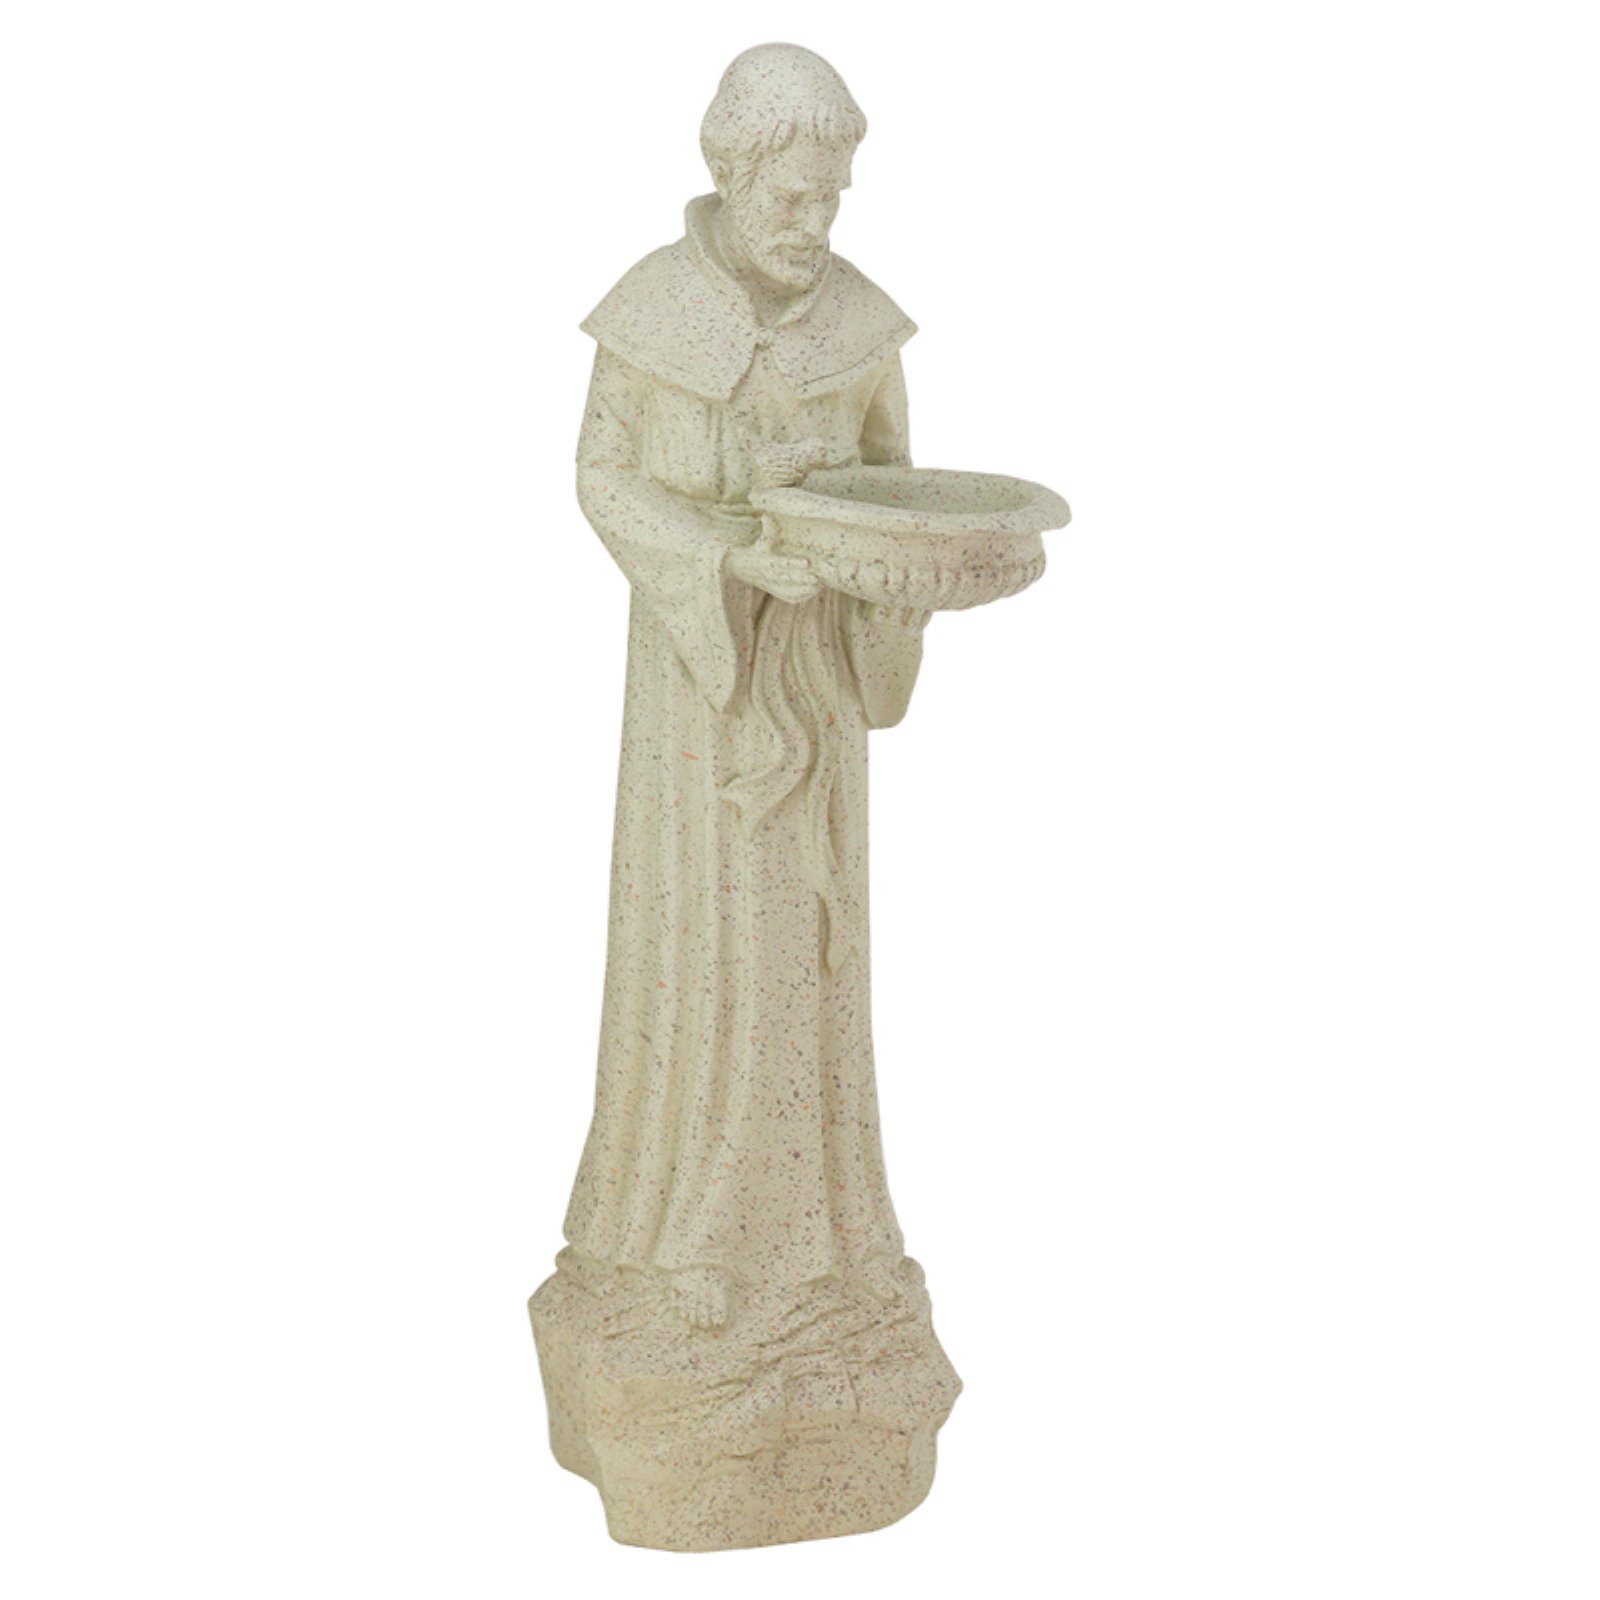 Northlight St. Francis of Assisi Religious Birdfeeder Outdoor Garden Statue by Northlight